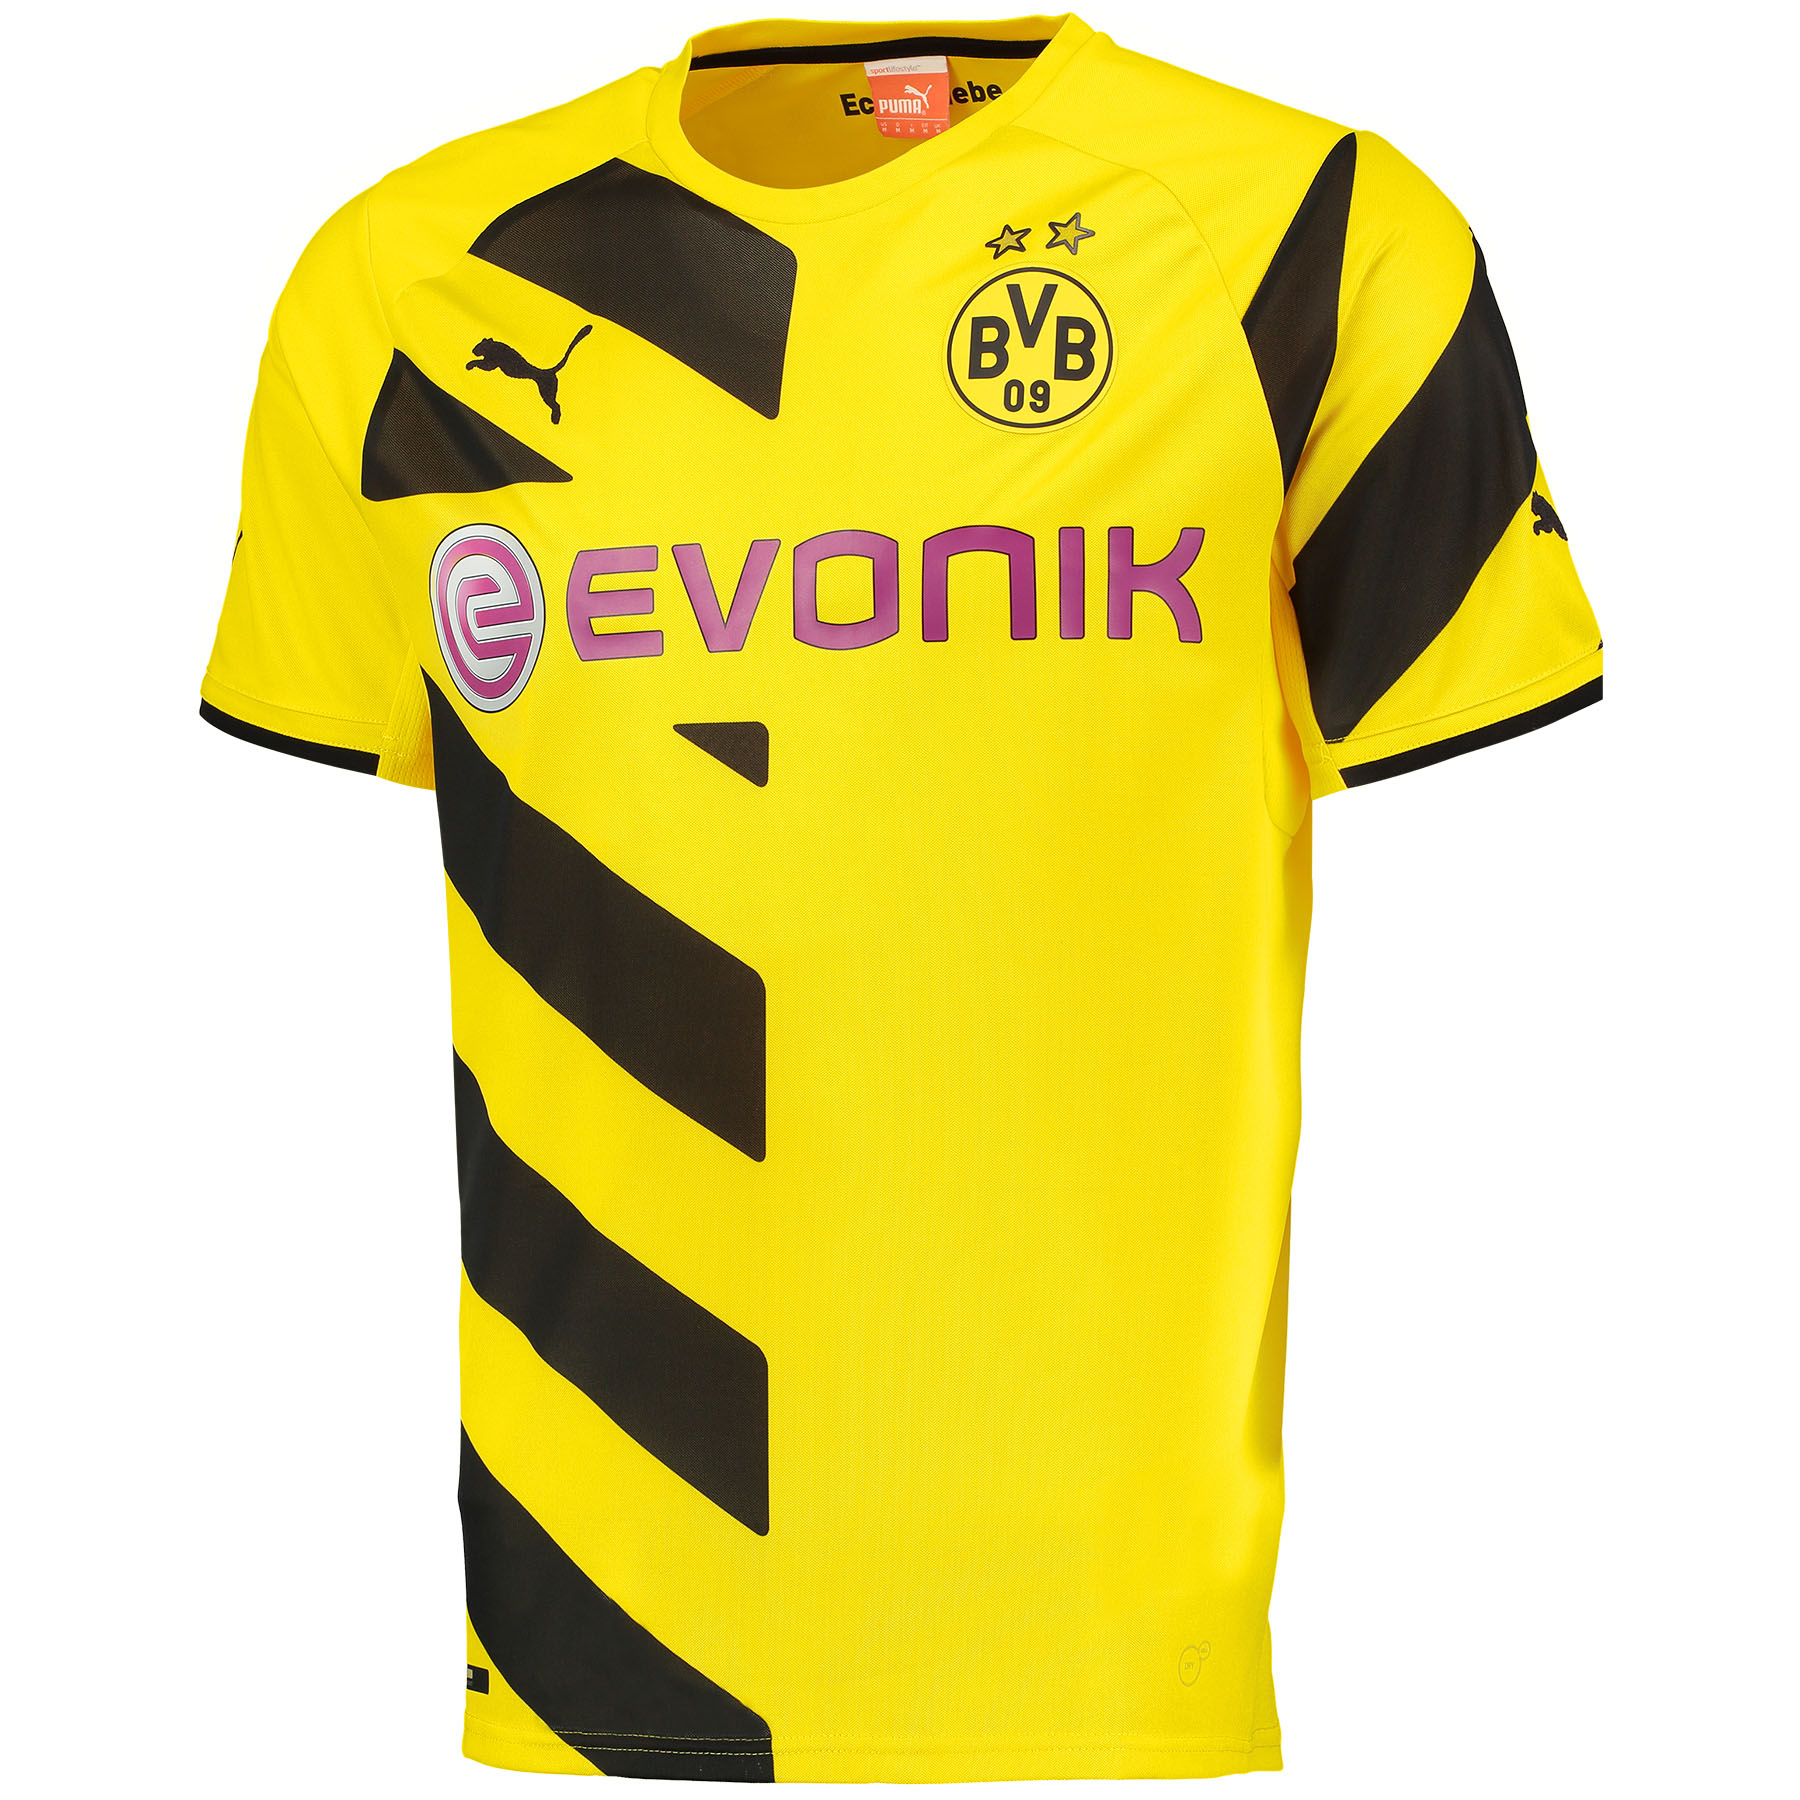 BVB Home Shirt 2014/15